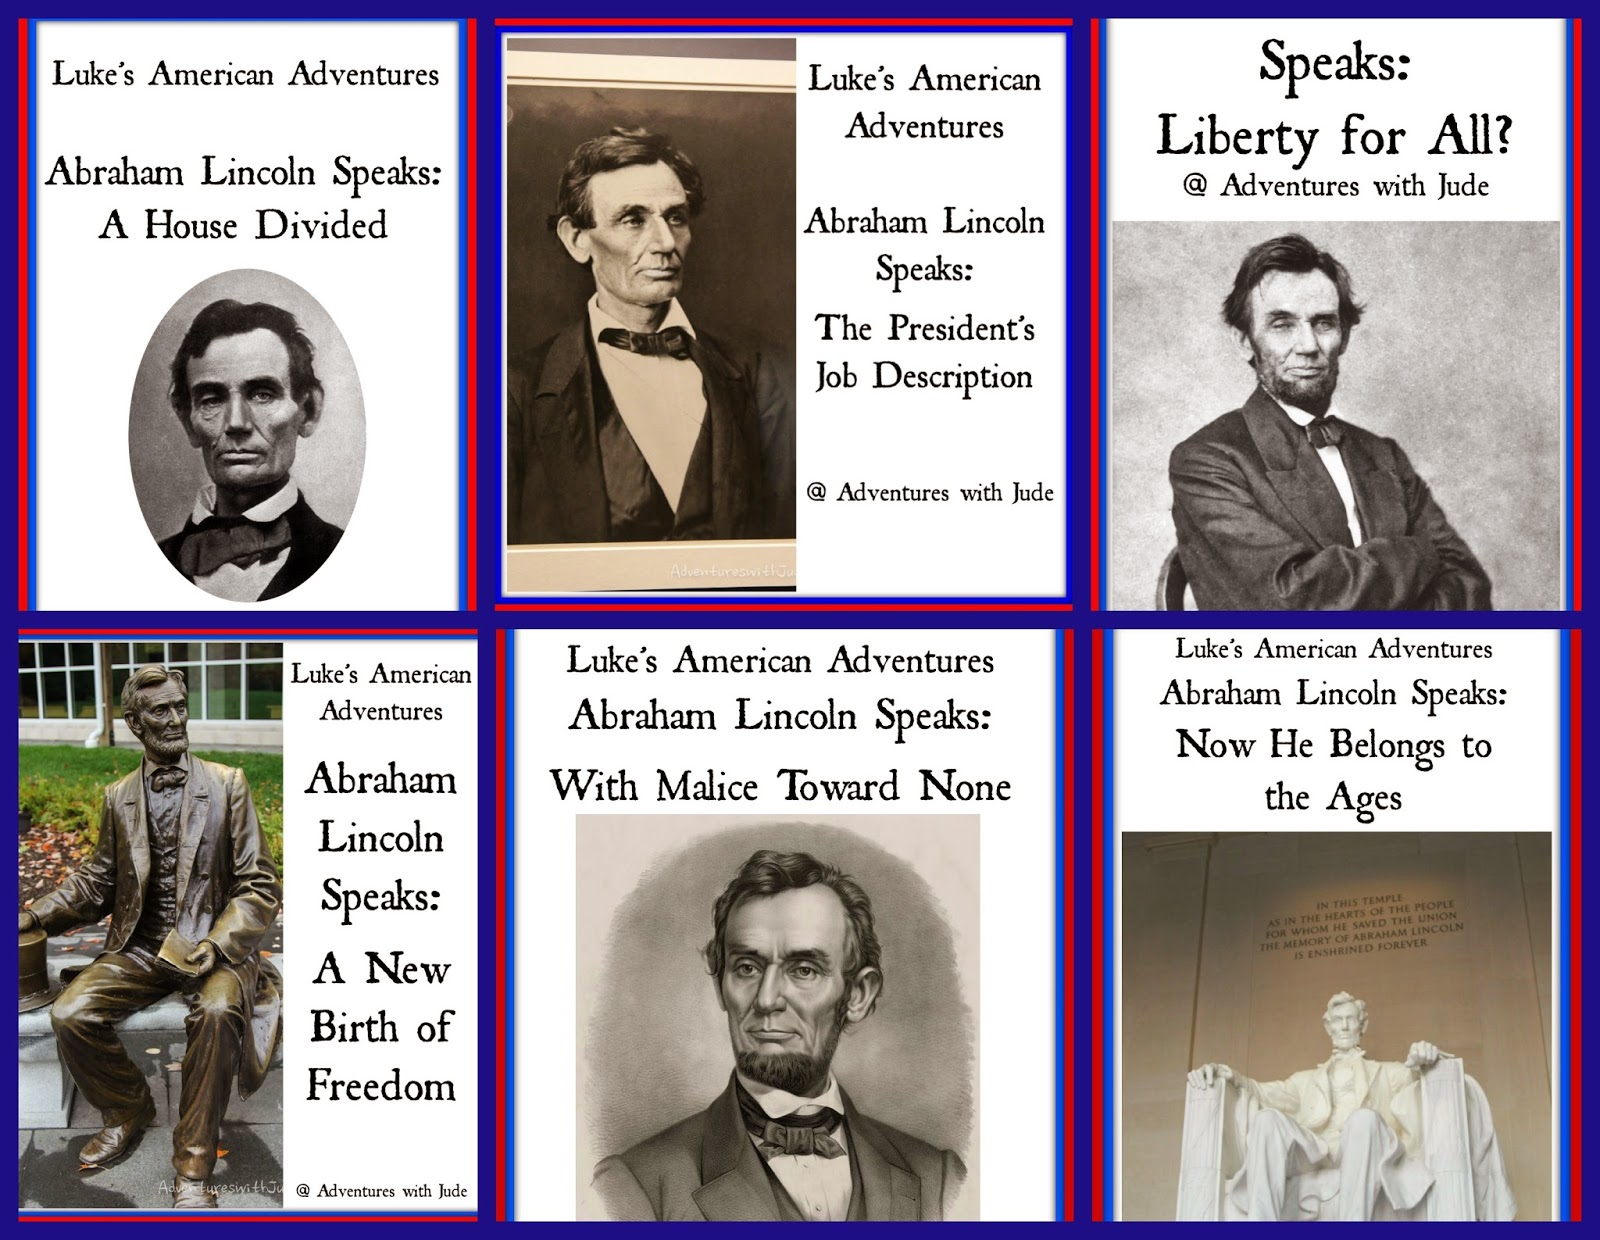 beliefs and teachings of abraham lincoln President abraham lincoln instituted the holiday in 1863 during the civil war however, he did not have the harvest in mind he wanted americans to celebrate the holiday as a sign of unity and thanksgiving to god.